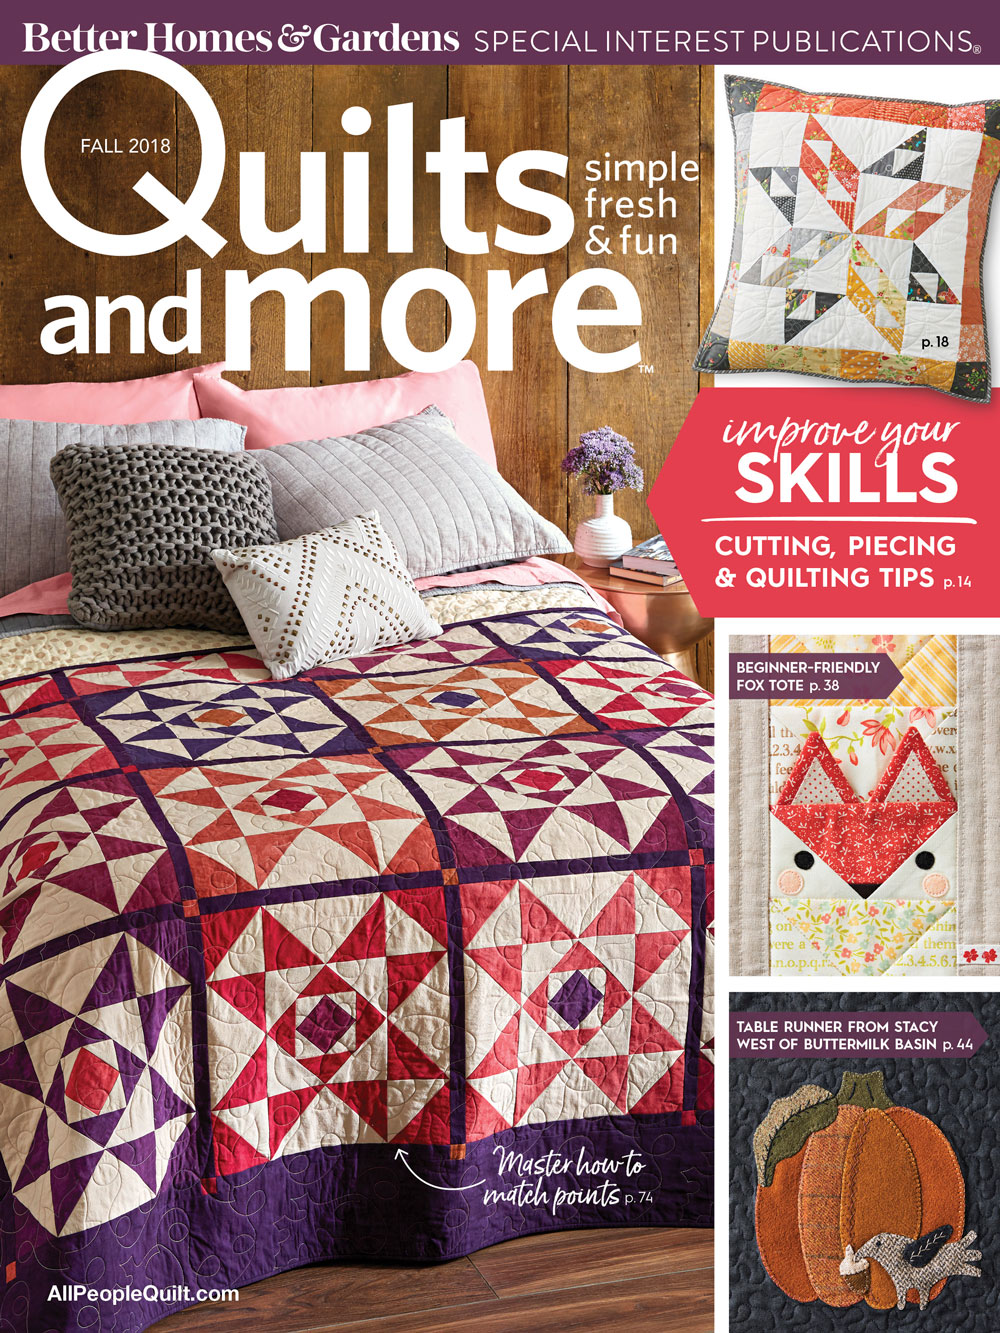 Quilts and More Fall 2018